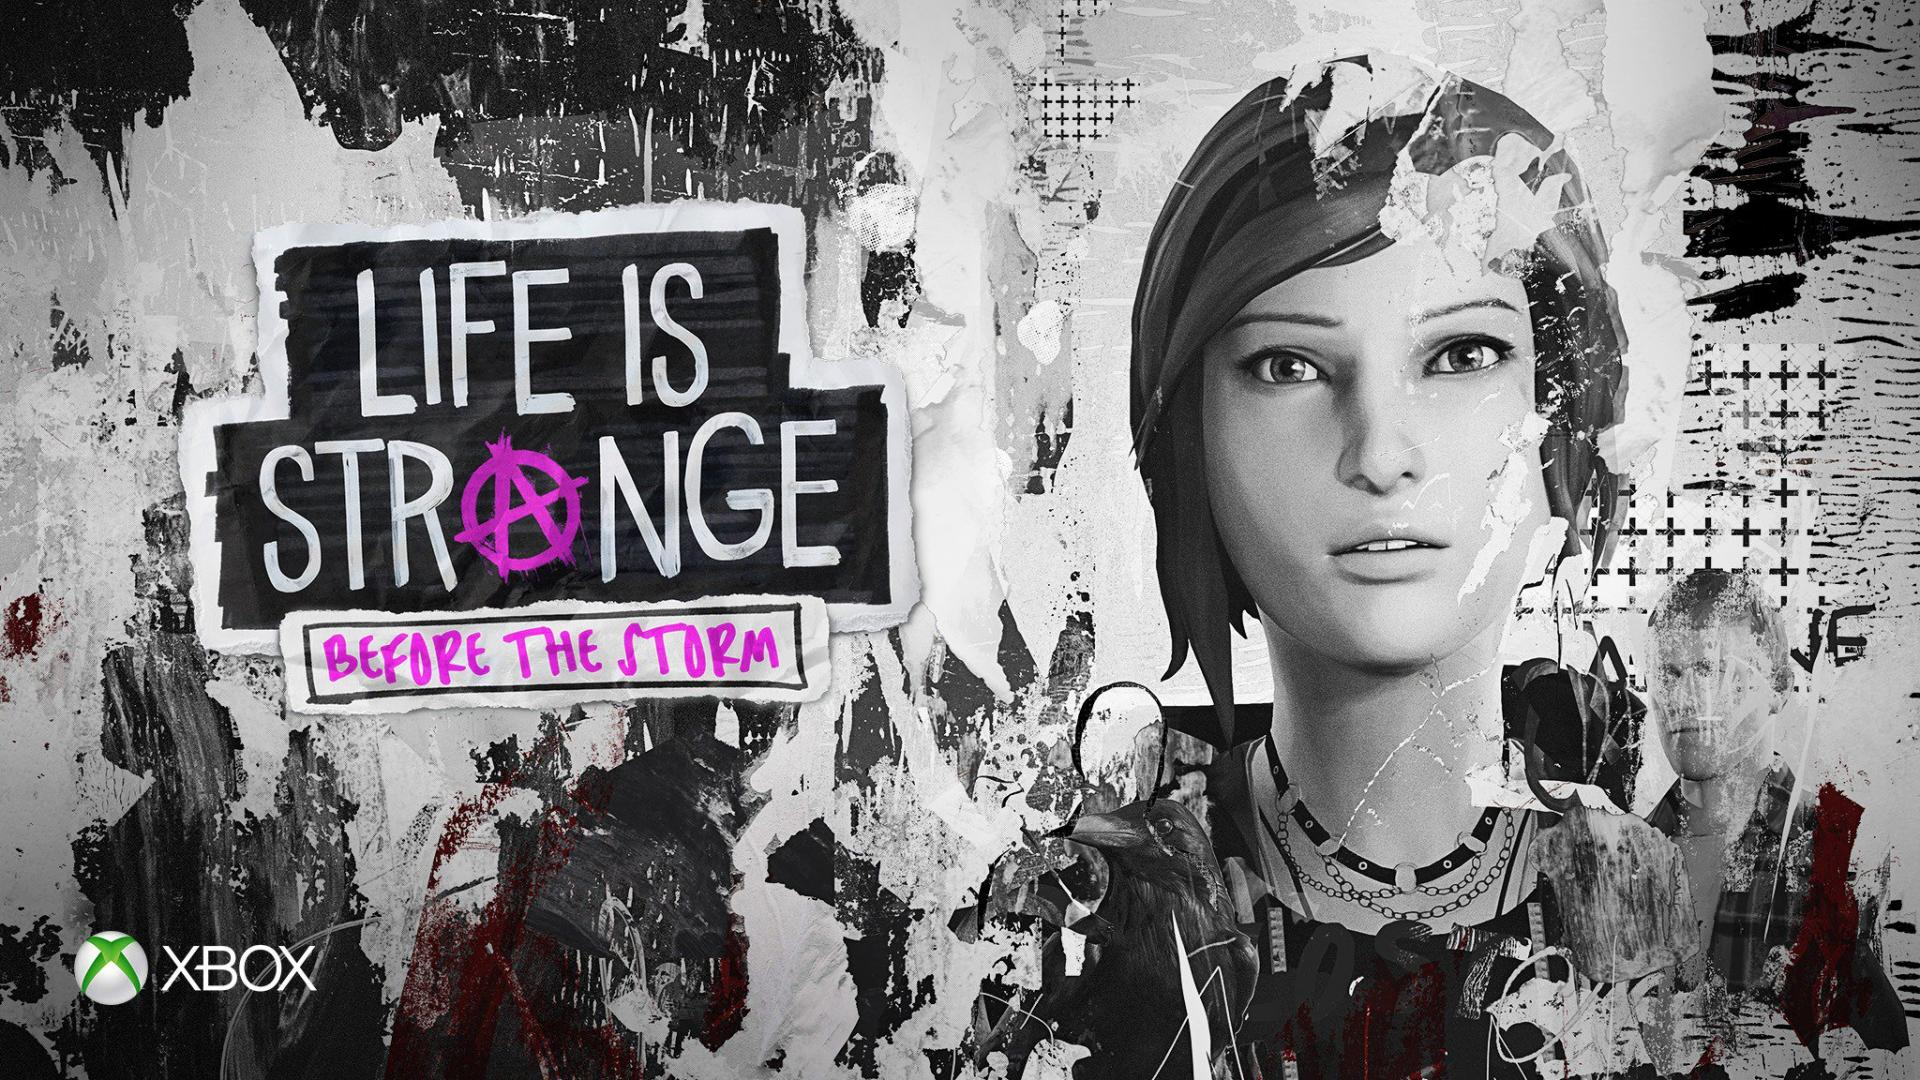 Square Enix dévoile le spin-off de Life is Strange